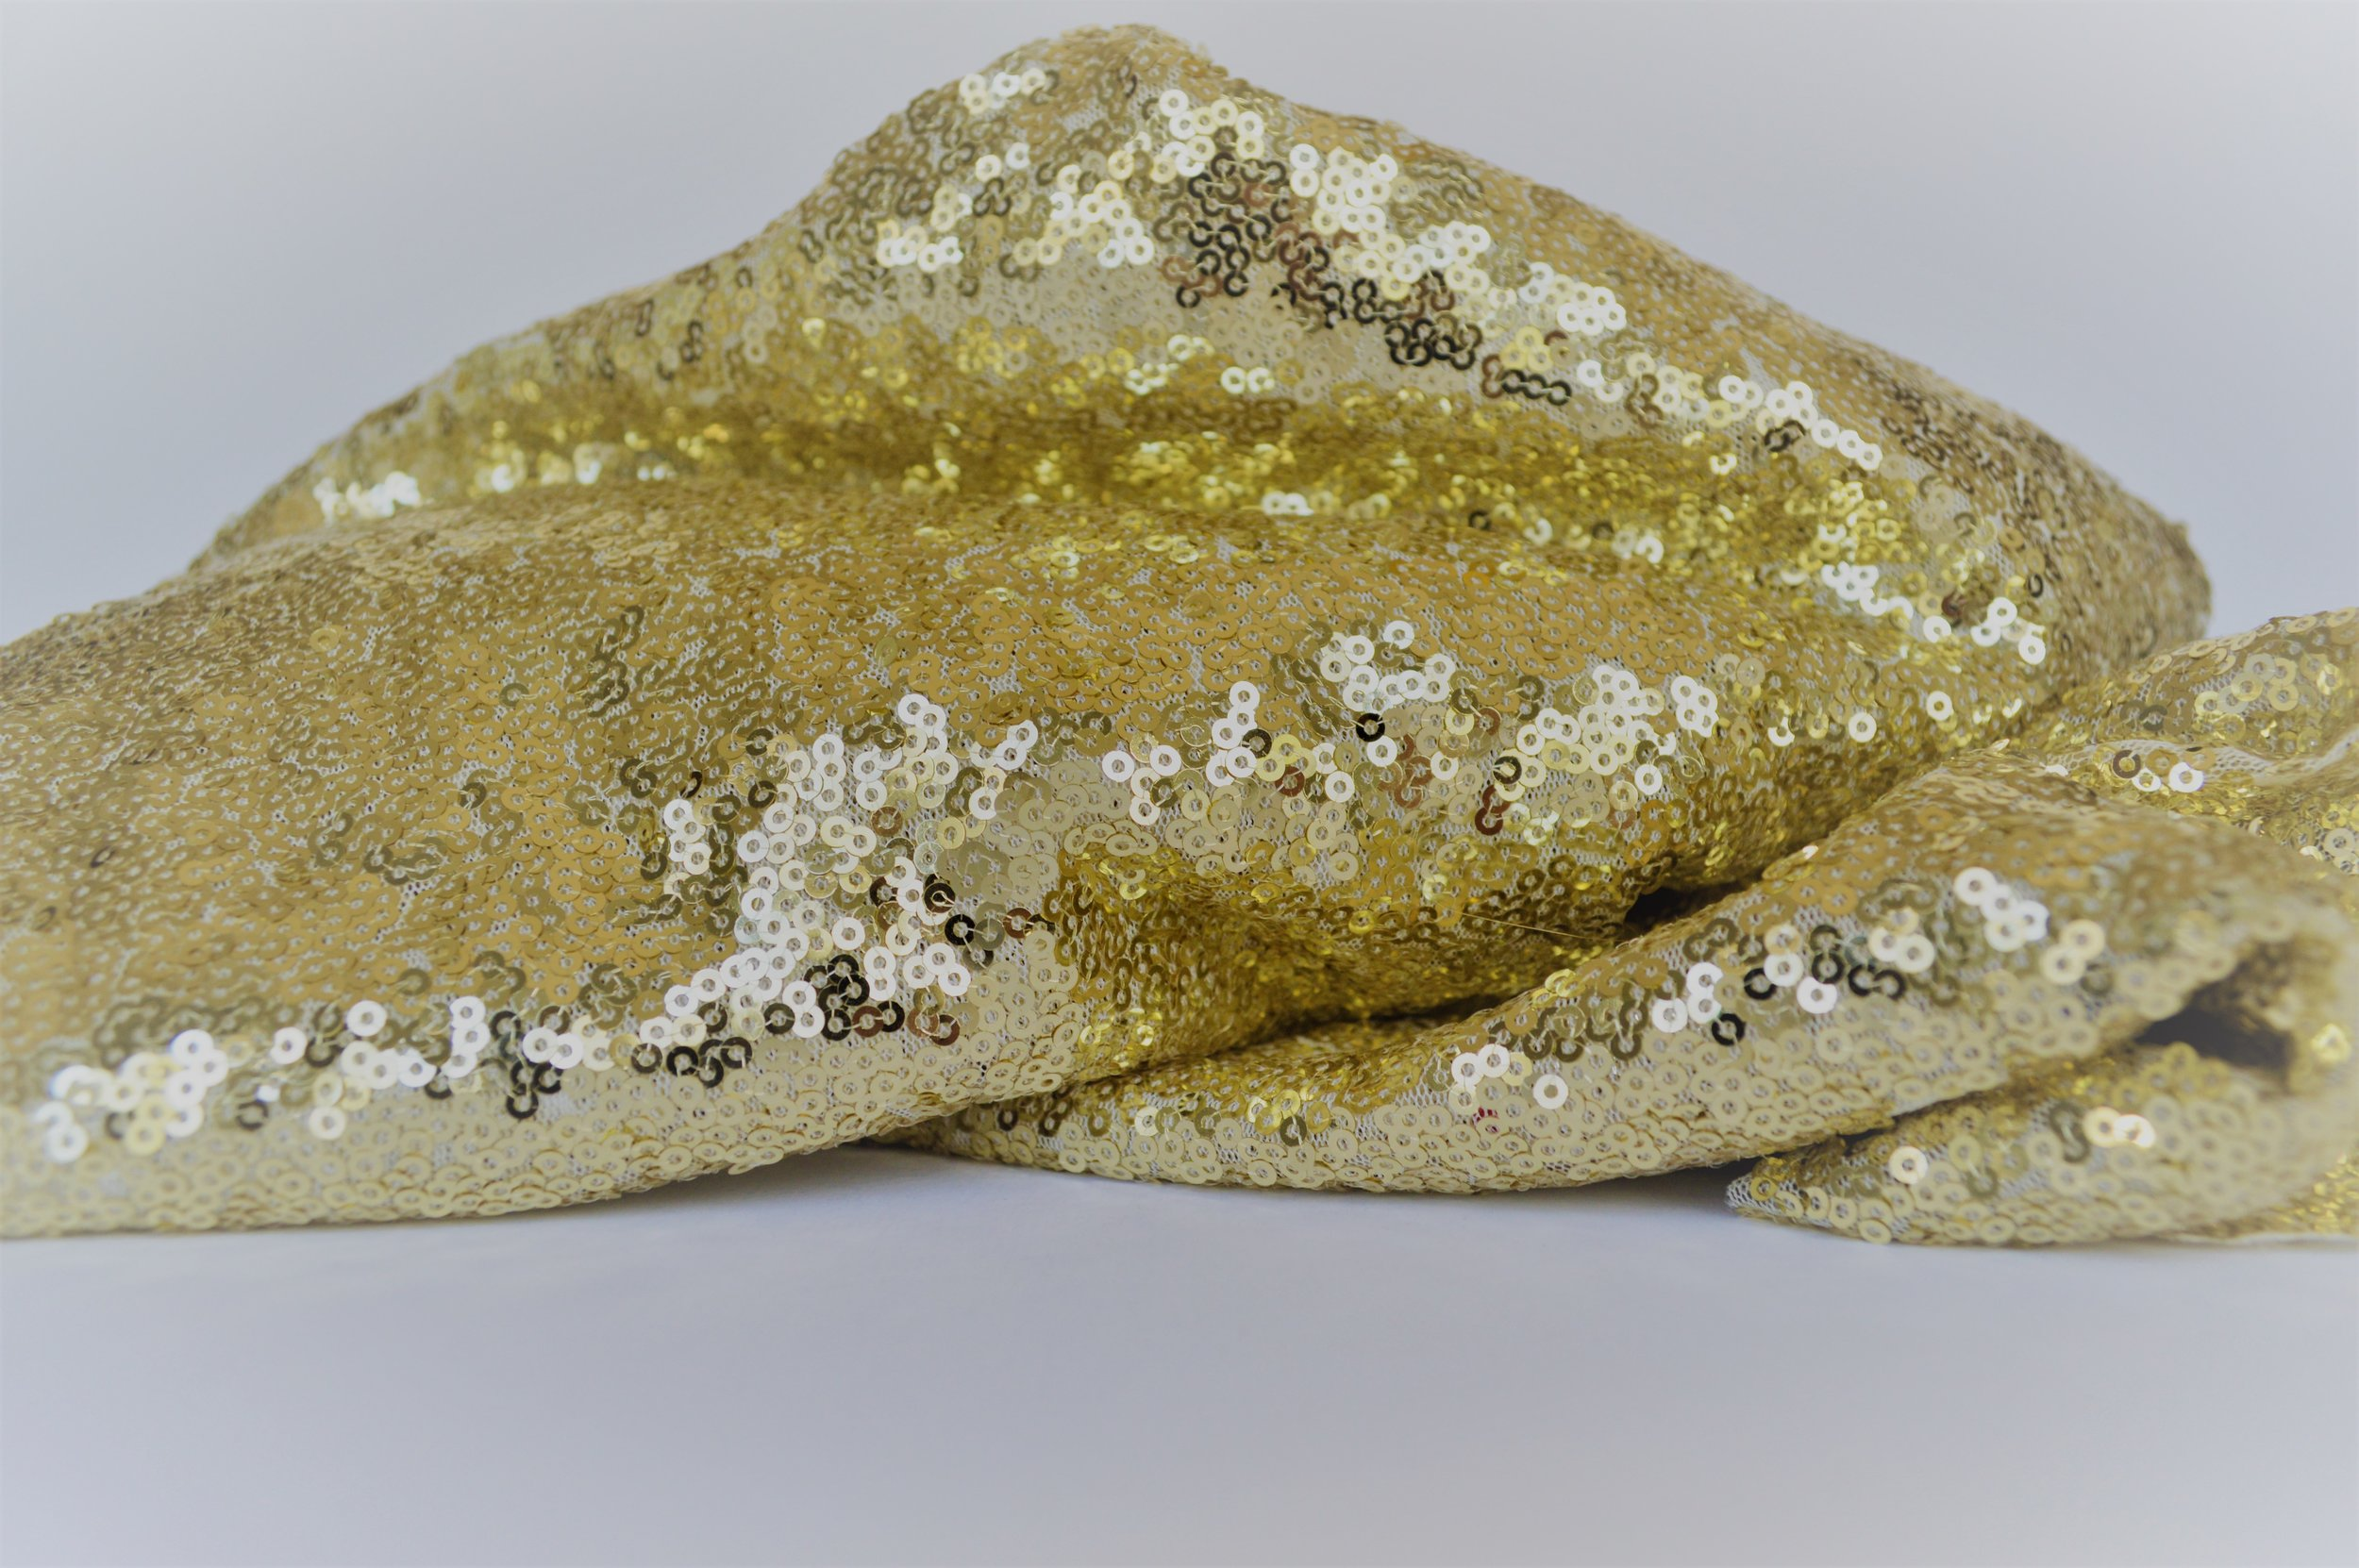 Gold Sequin Tablecloths/Runners  dimensions: THREE sizes: 48''x48'', 14''x88'', & 48''x66'' >>>$4.00 each<<<